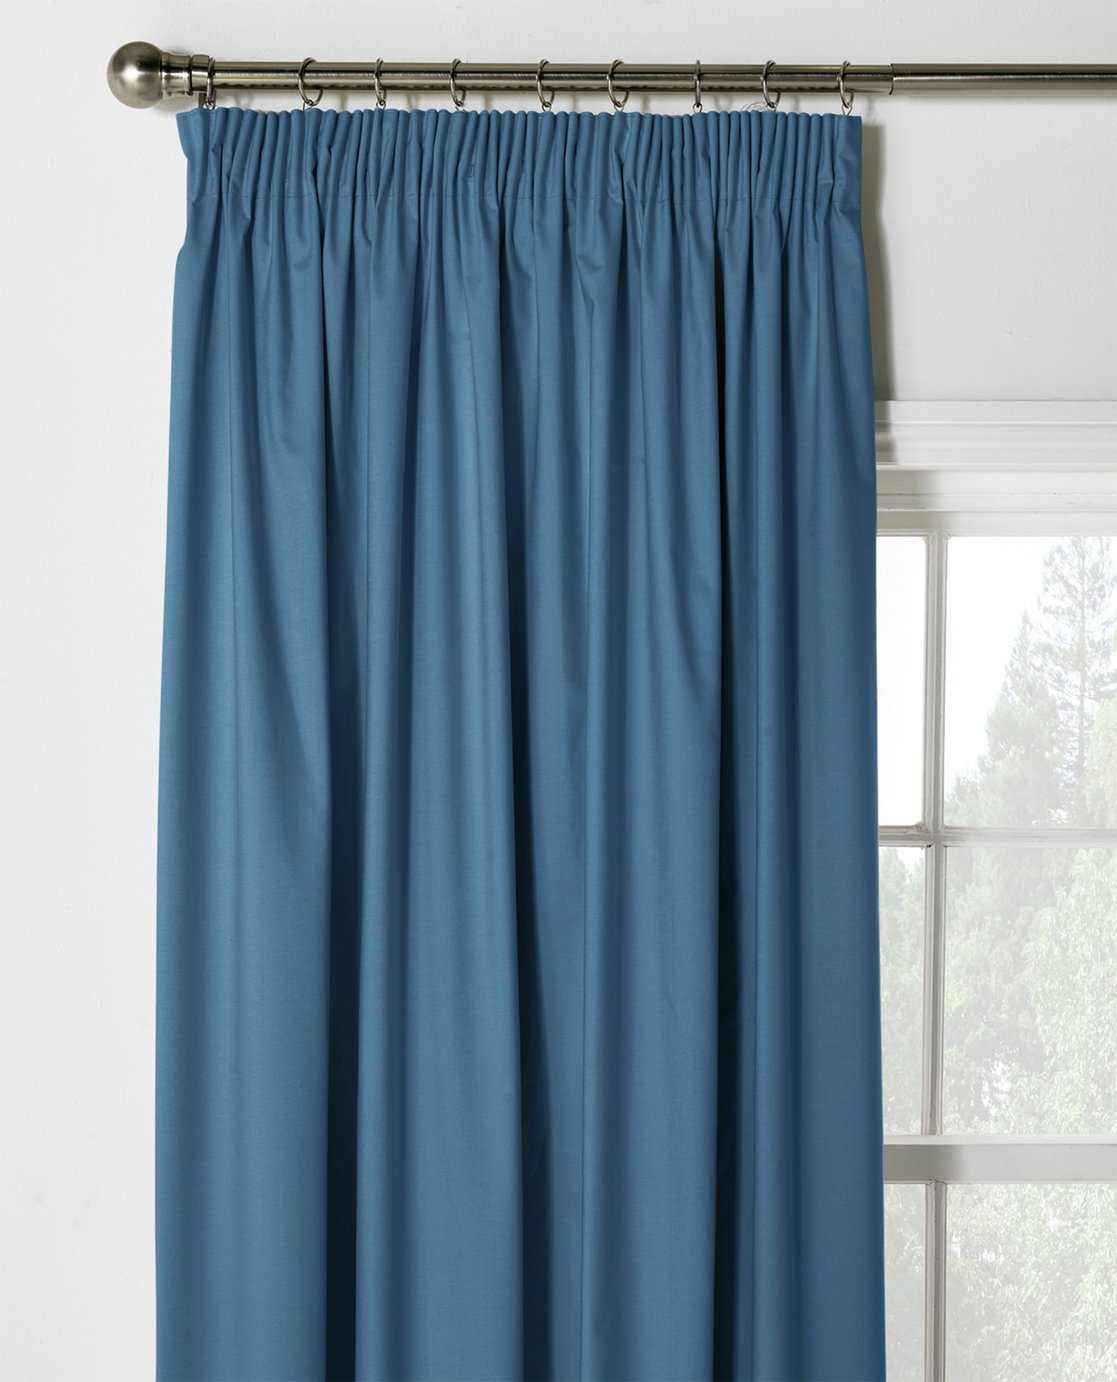 ColourMatch Thermal Blackout Curtains - 117x183cm - Navy